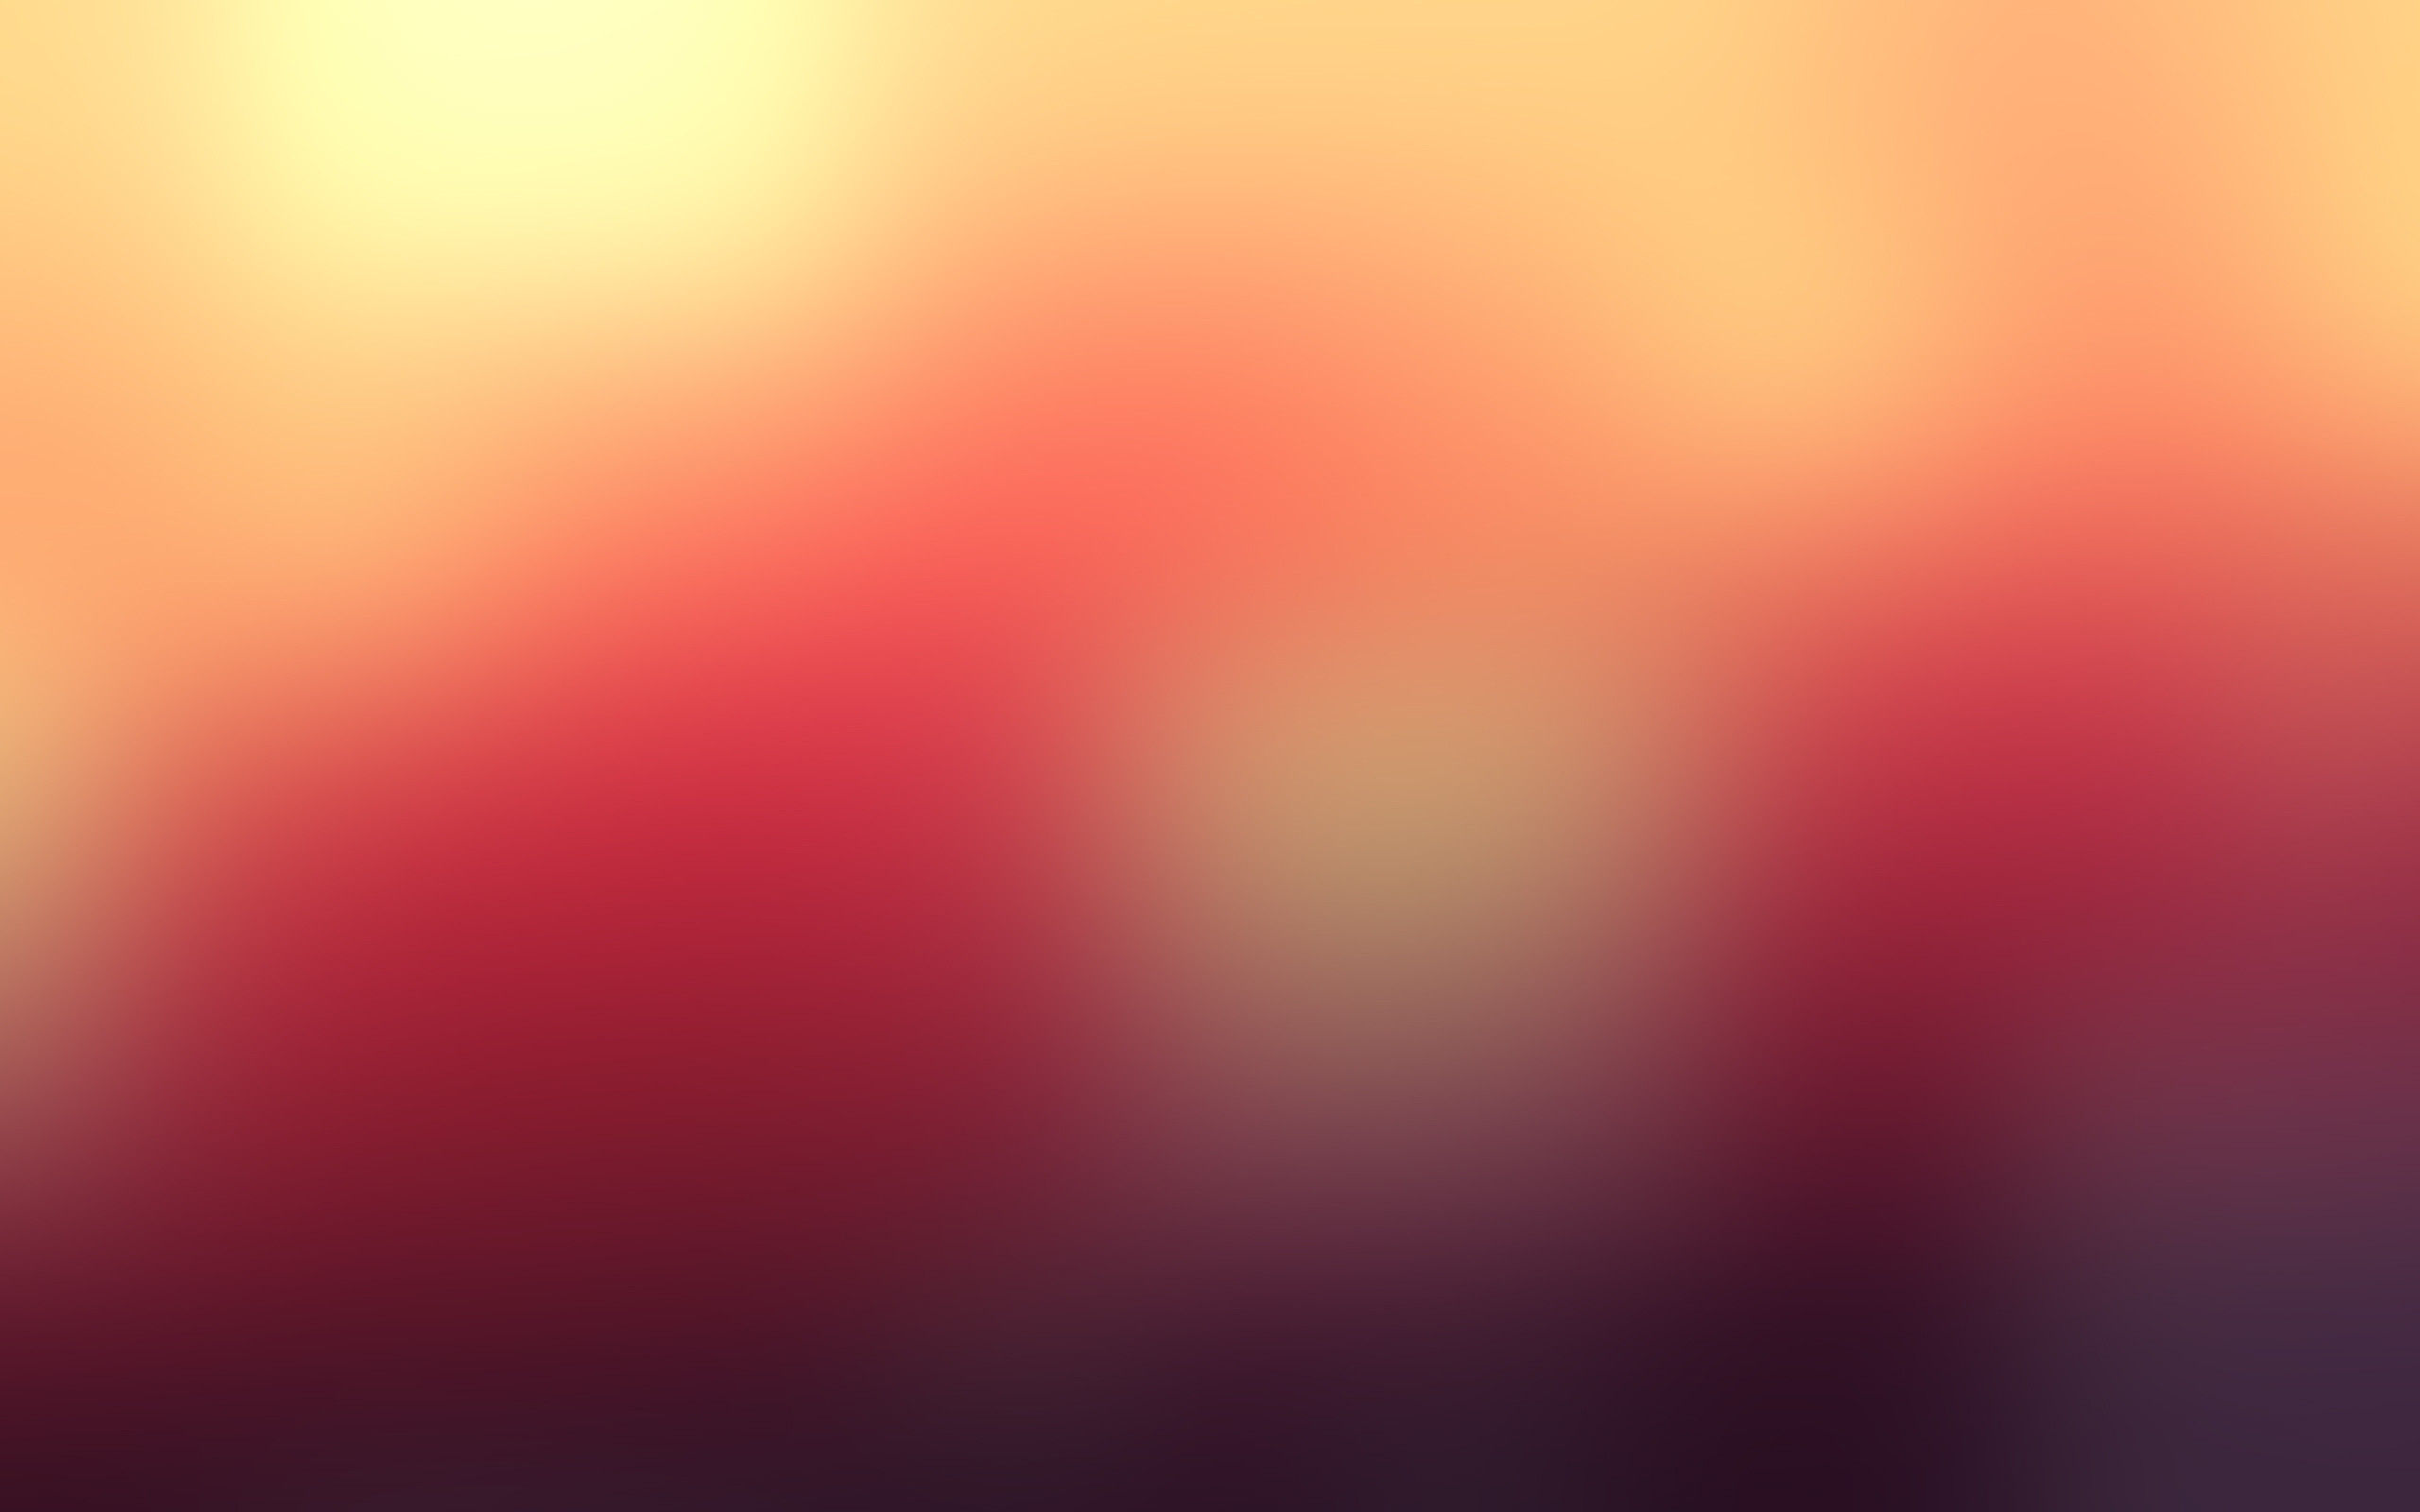 gradient color three hd wallpapers – photo #20. Gradients